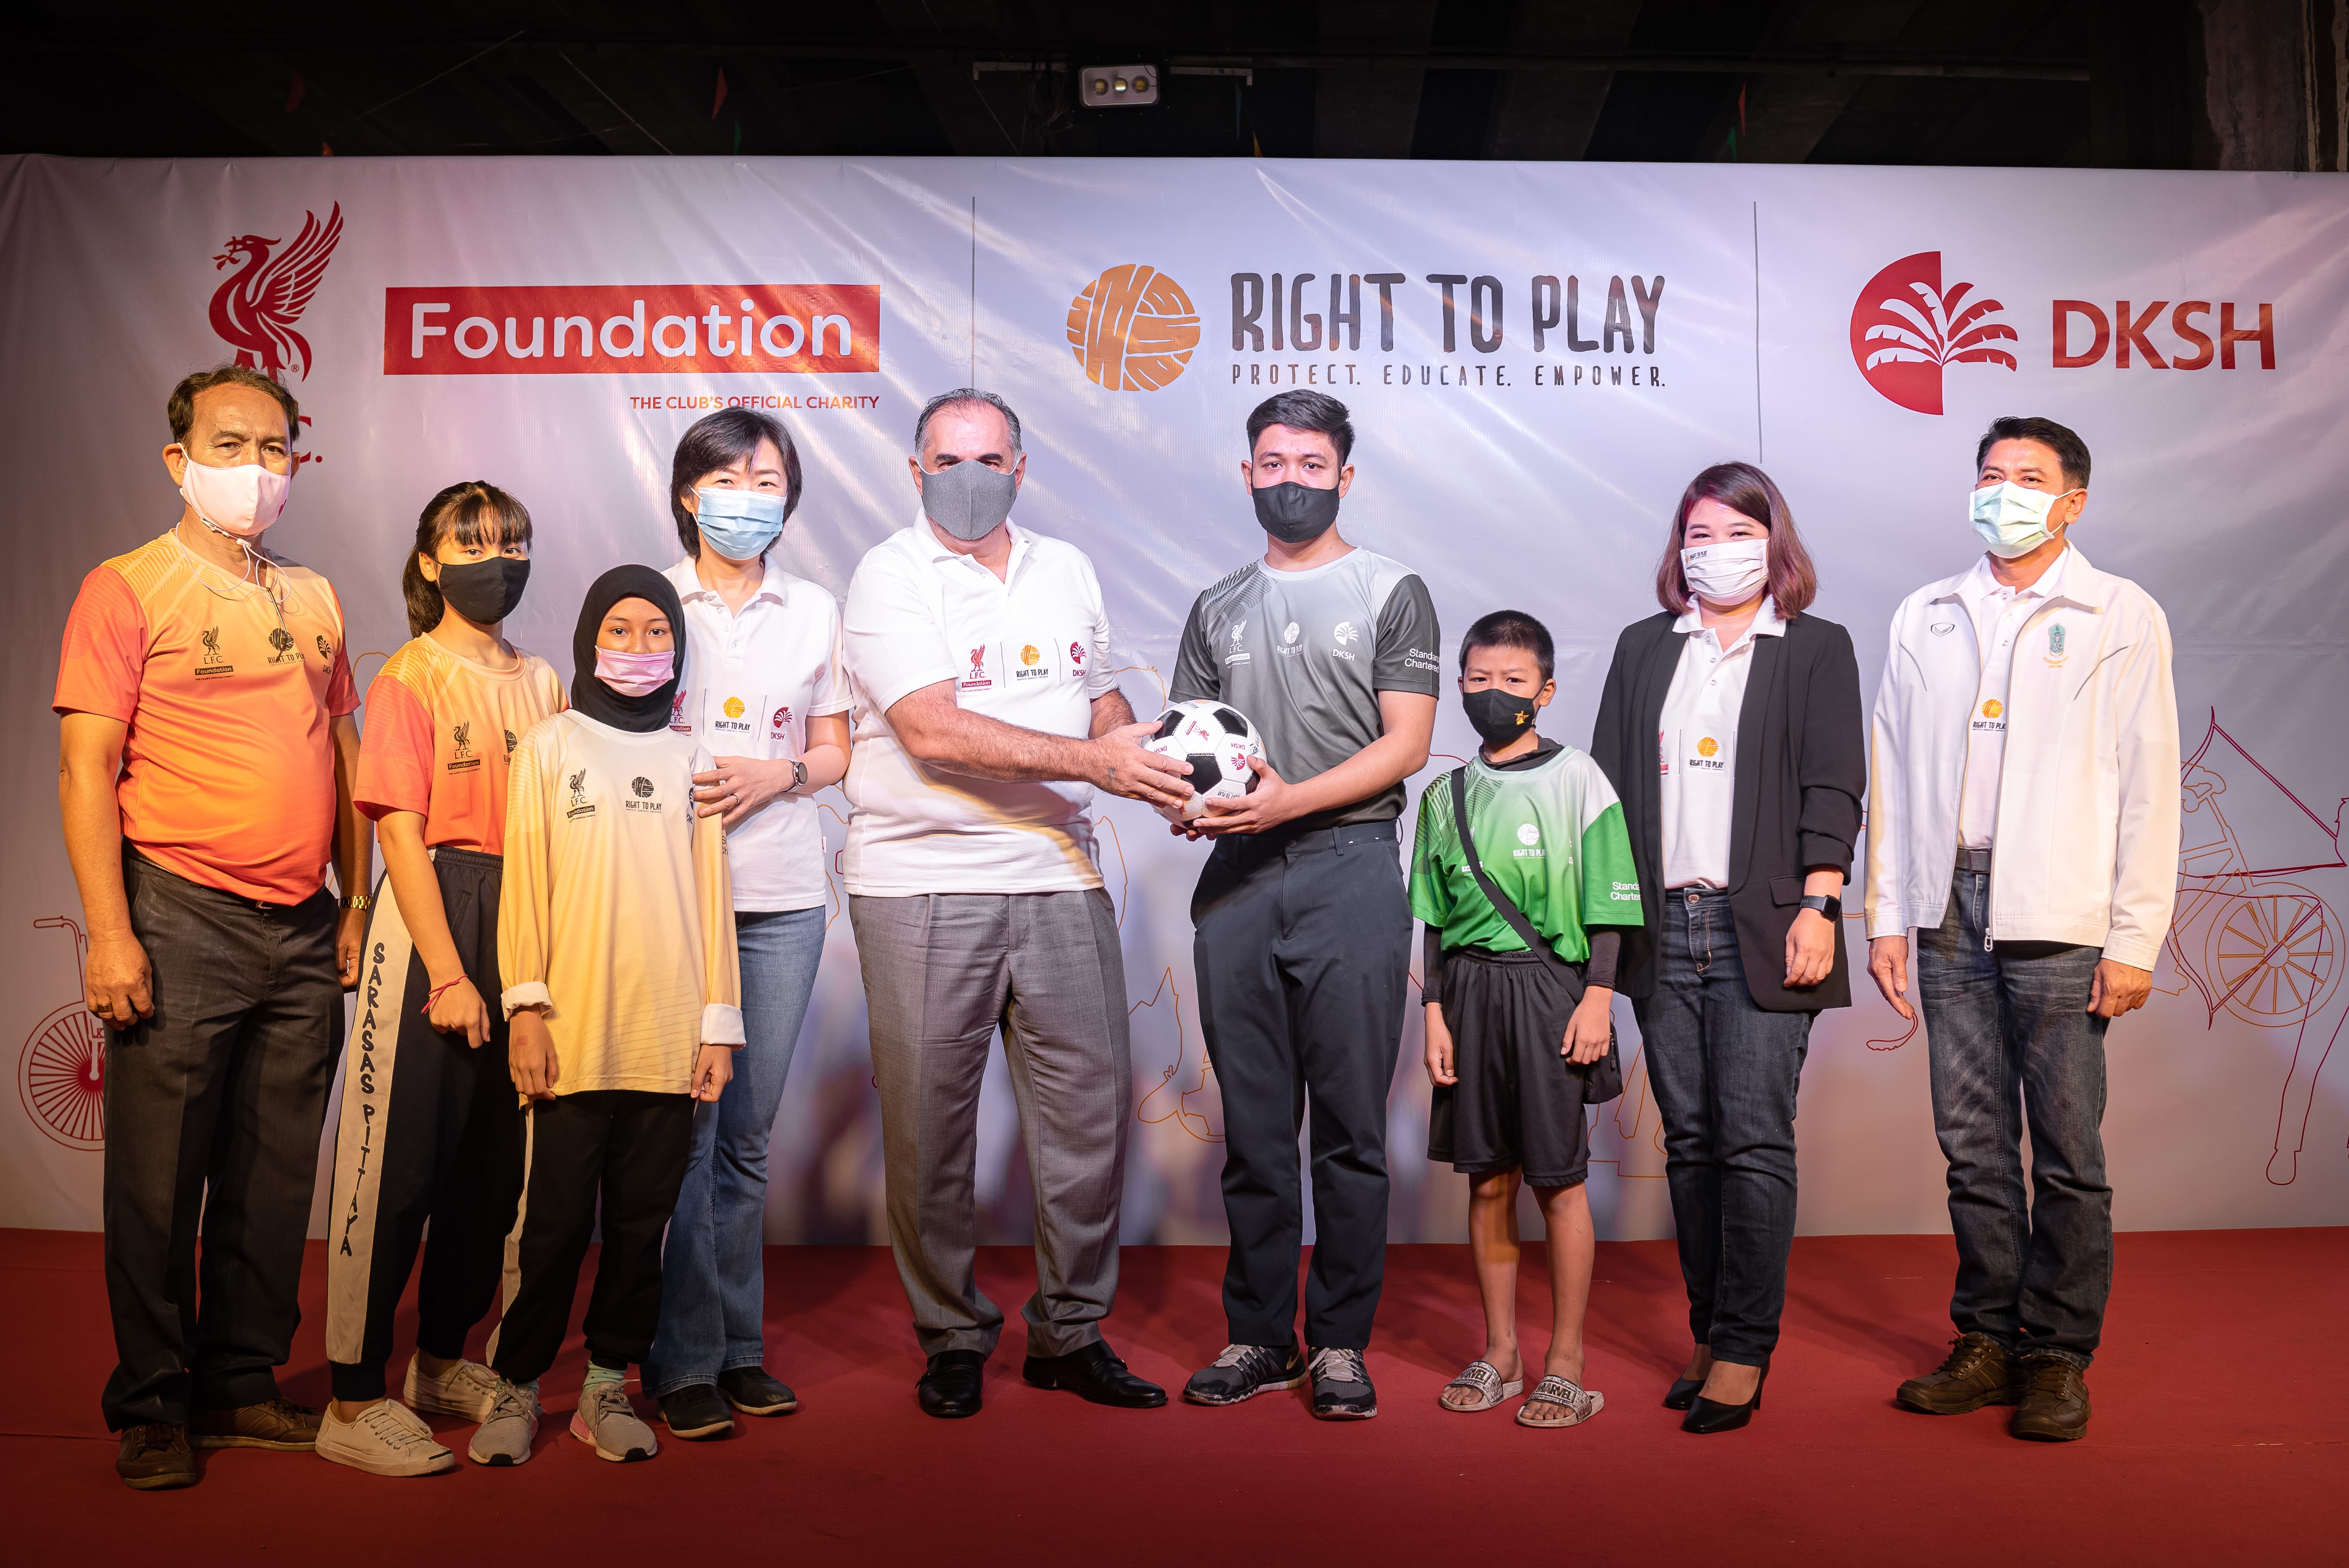 DKSH, Right To Play and Liverpool F.C. Foundation partner to improve life skills for children in Thailand